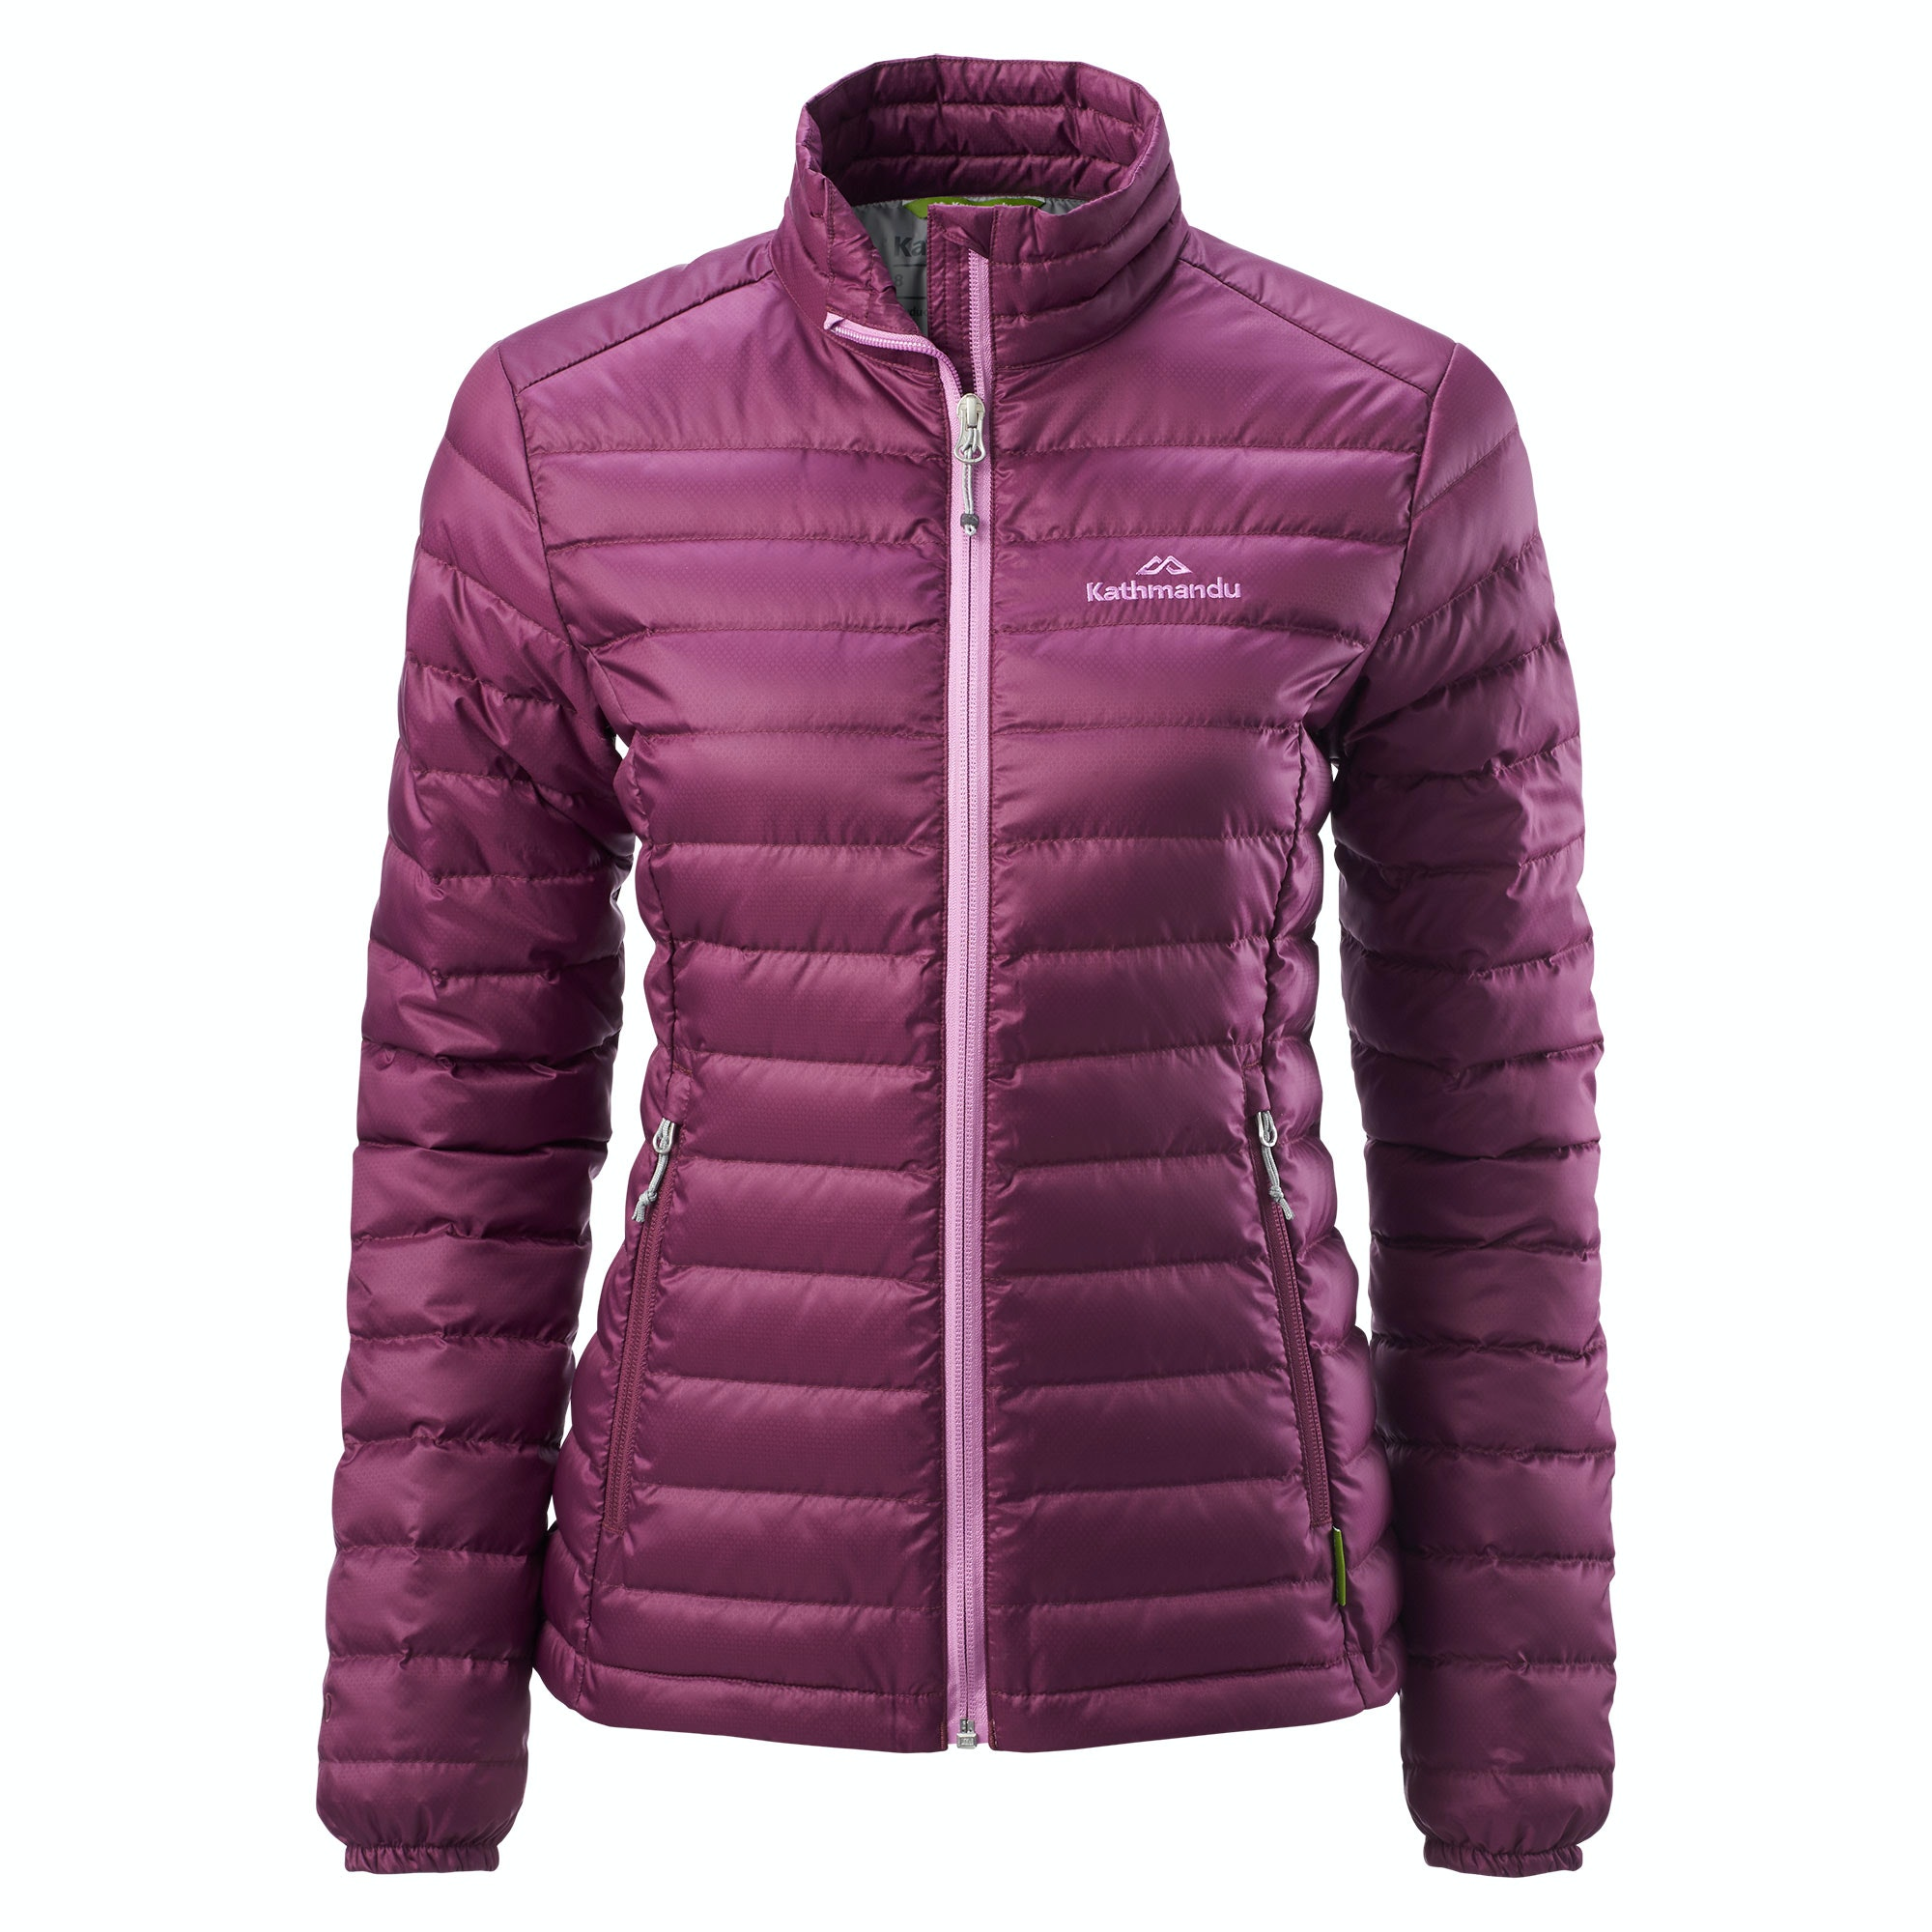 Heli Women's Lightweight Down Jacket v2 - Black